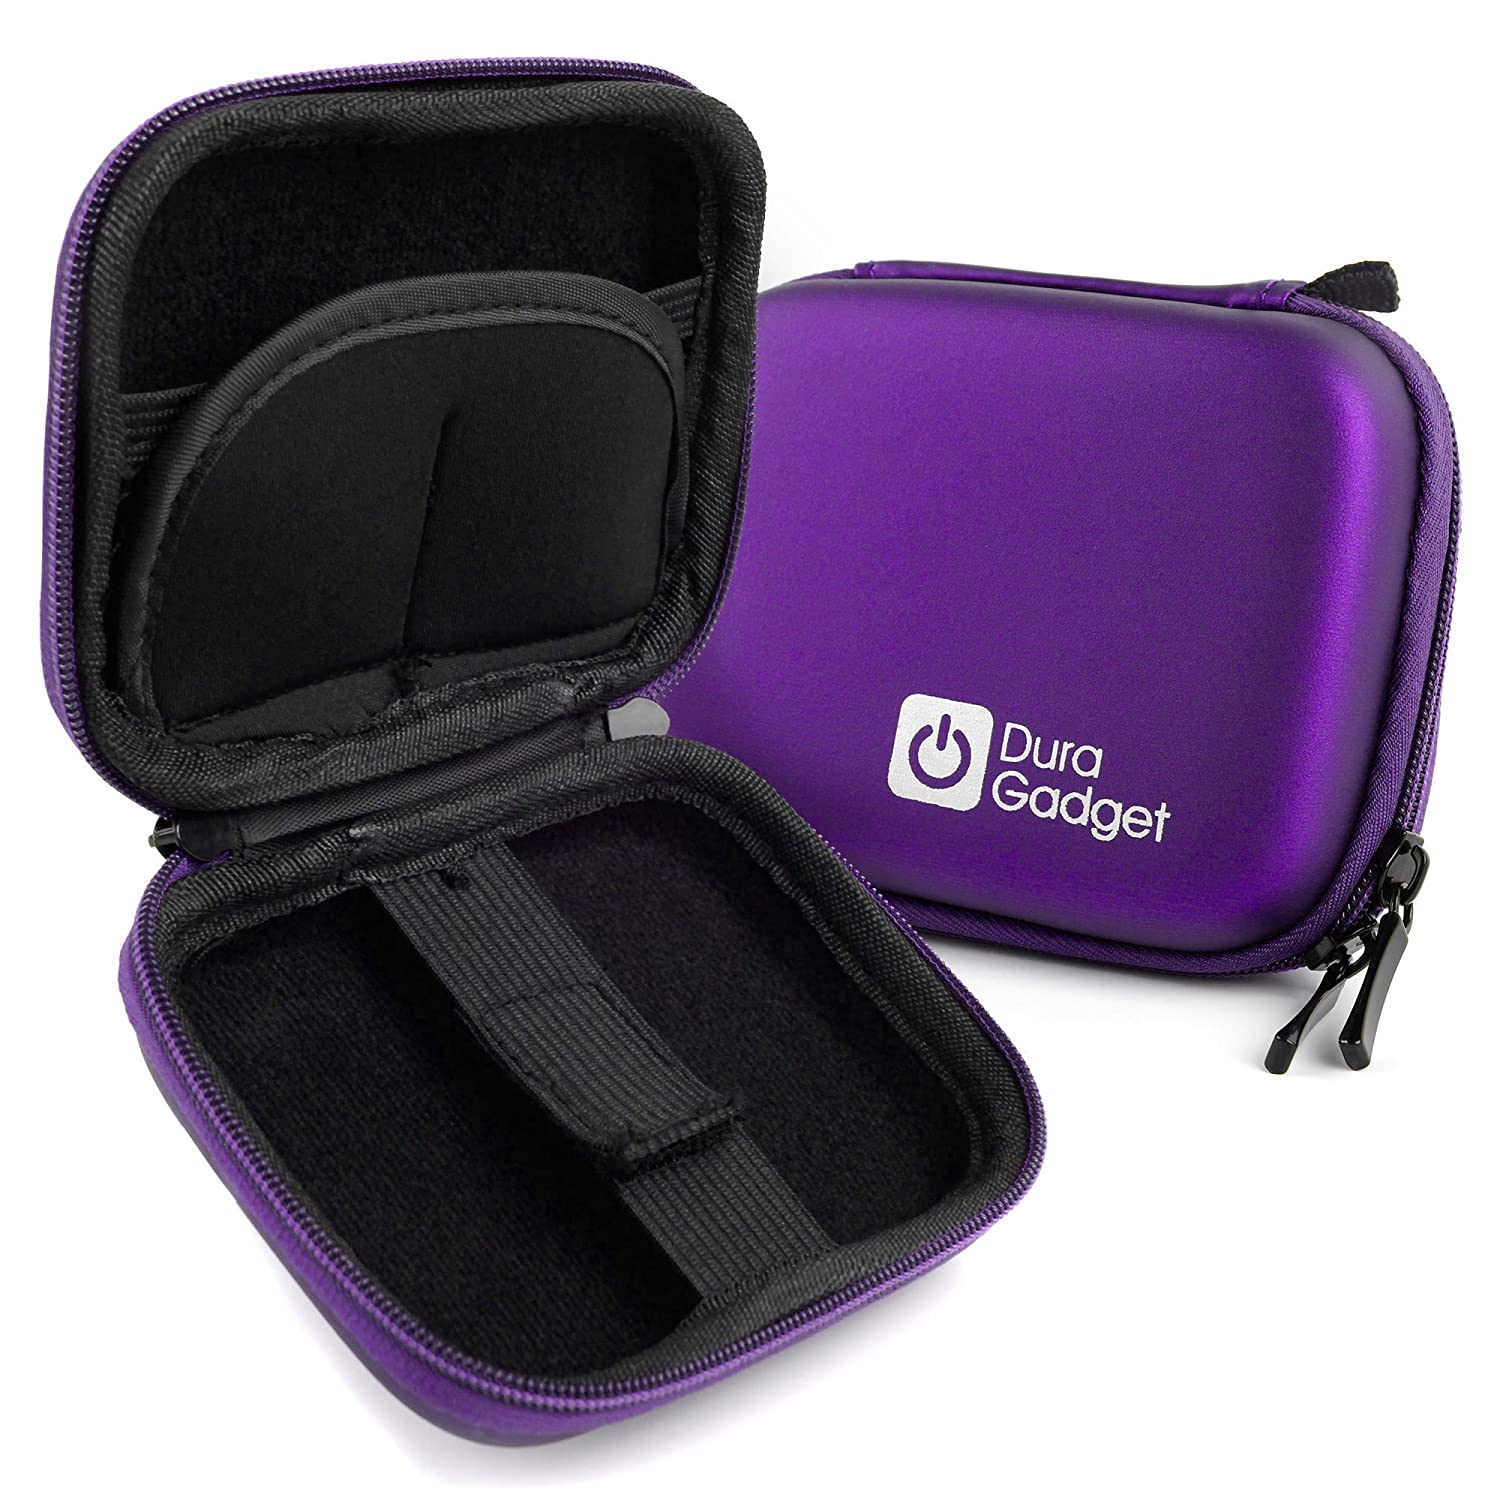 DURAGADGET Premium Quality Purple Hard EVA Shell Case with Carabiner Clip & Twin Zips - Compatible with The Fenyi Bluetooth Wireless Smart Bracelet i5 Plus i5+